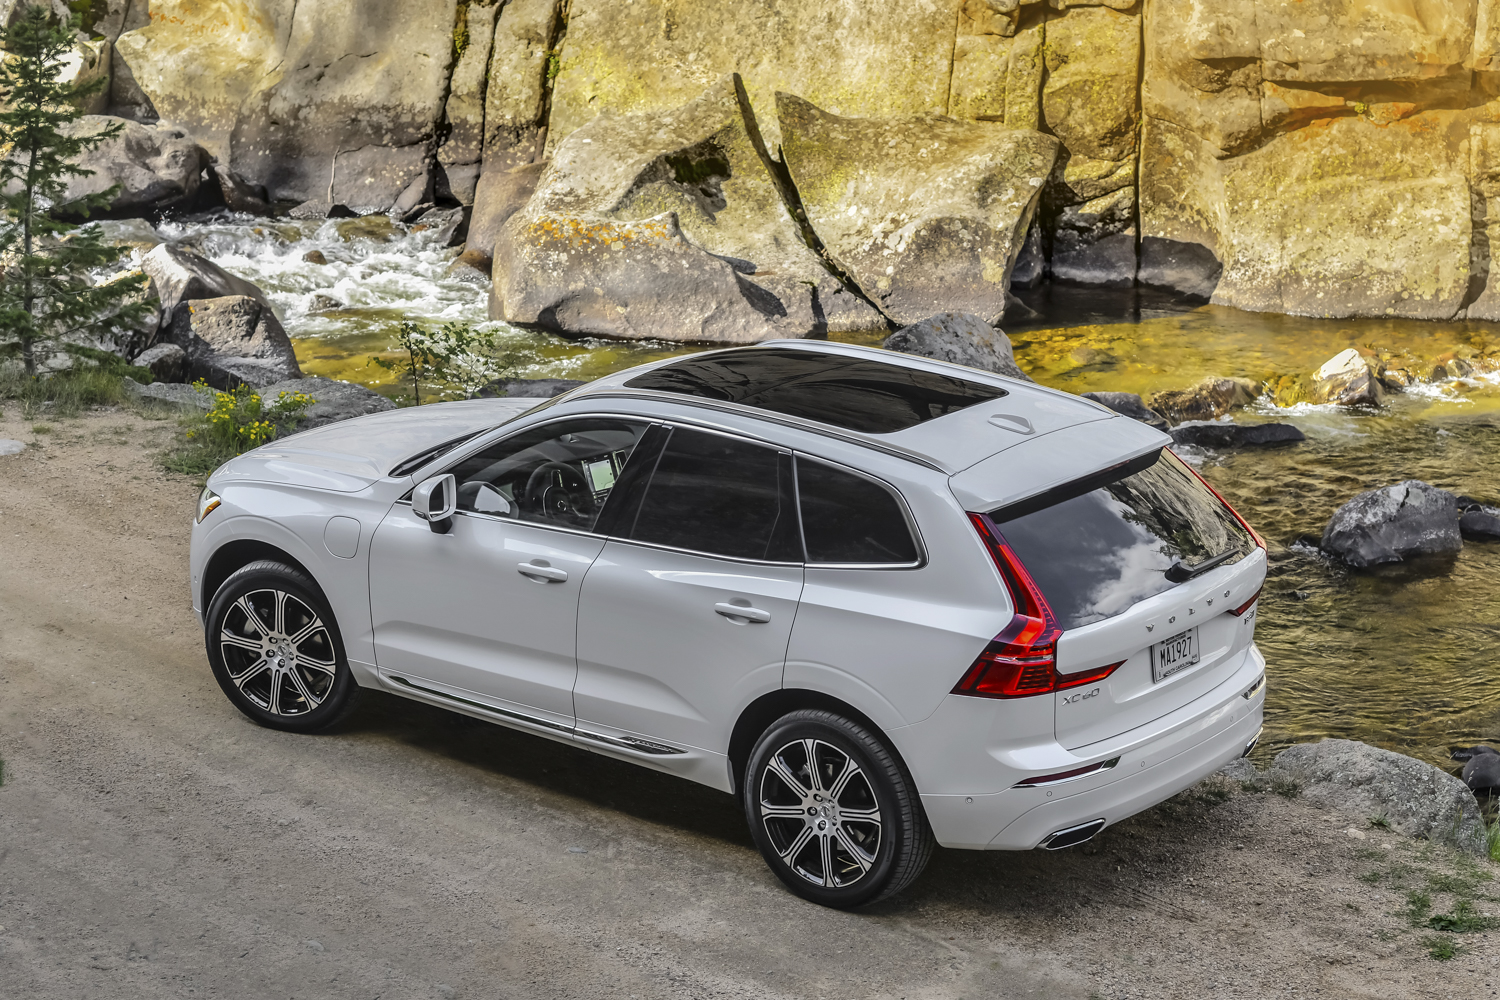 Model 2018 Volvo XC60 T8 First Drive Review  Digital Trends